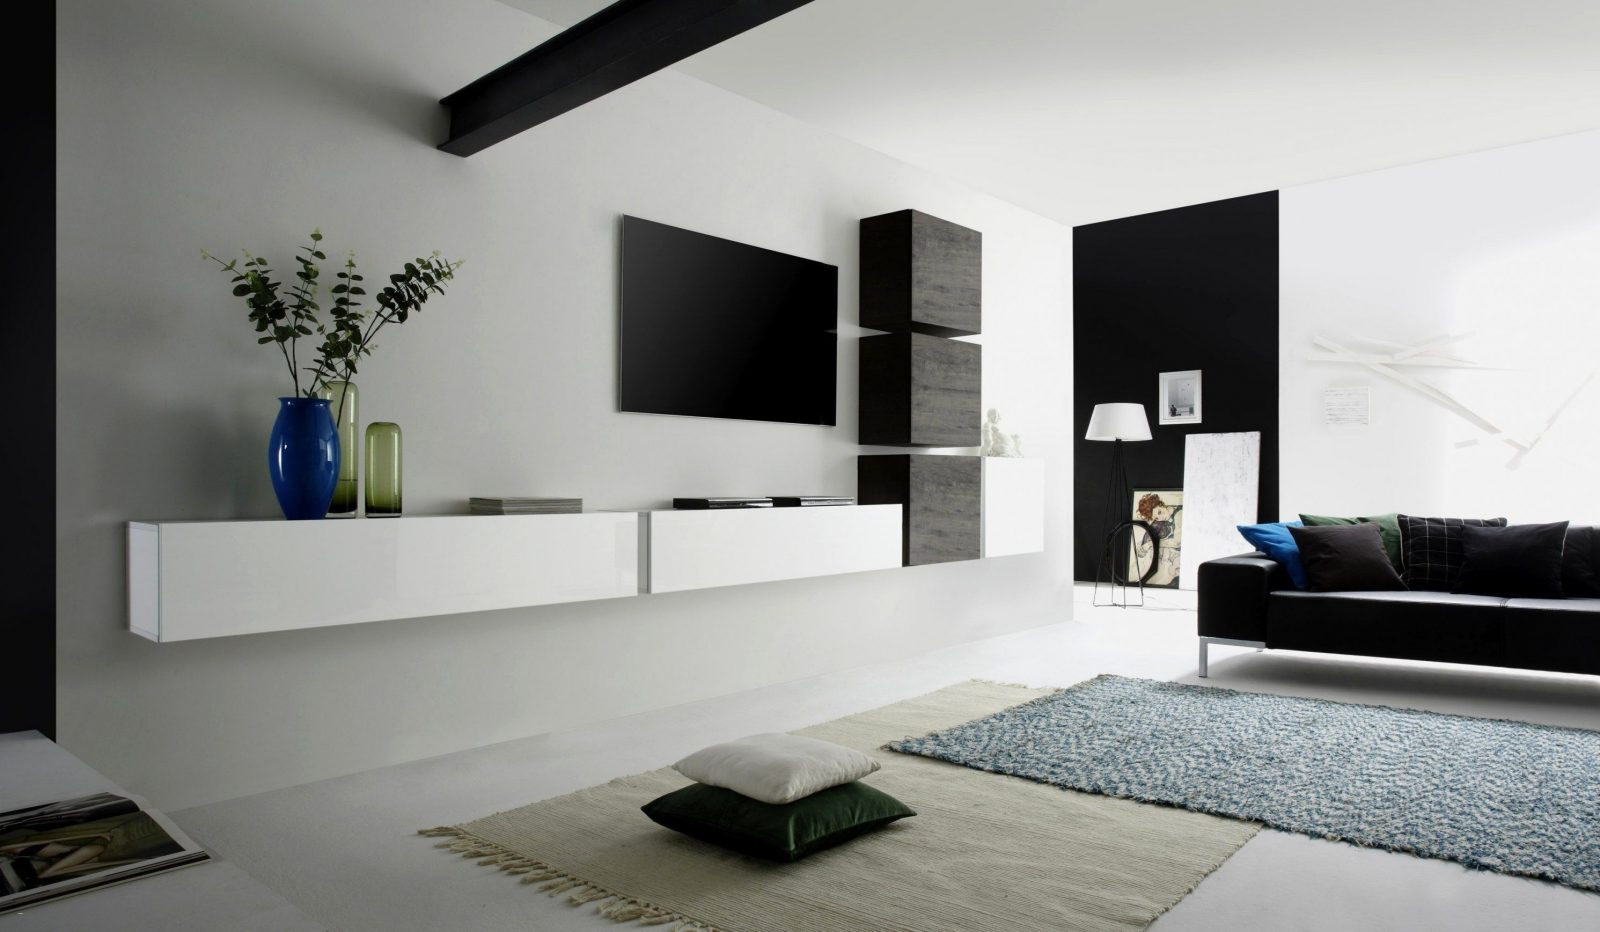 welche wandfarbe passt zu grauen m beln haus design ideen. Black Bedroom Furniture Sets. Home Design Ideas